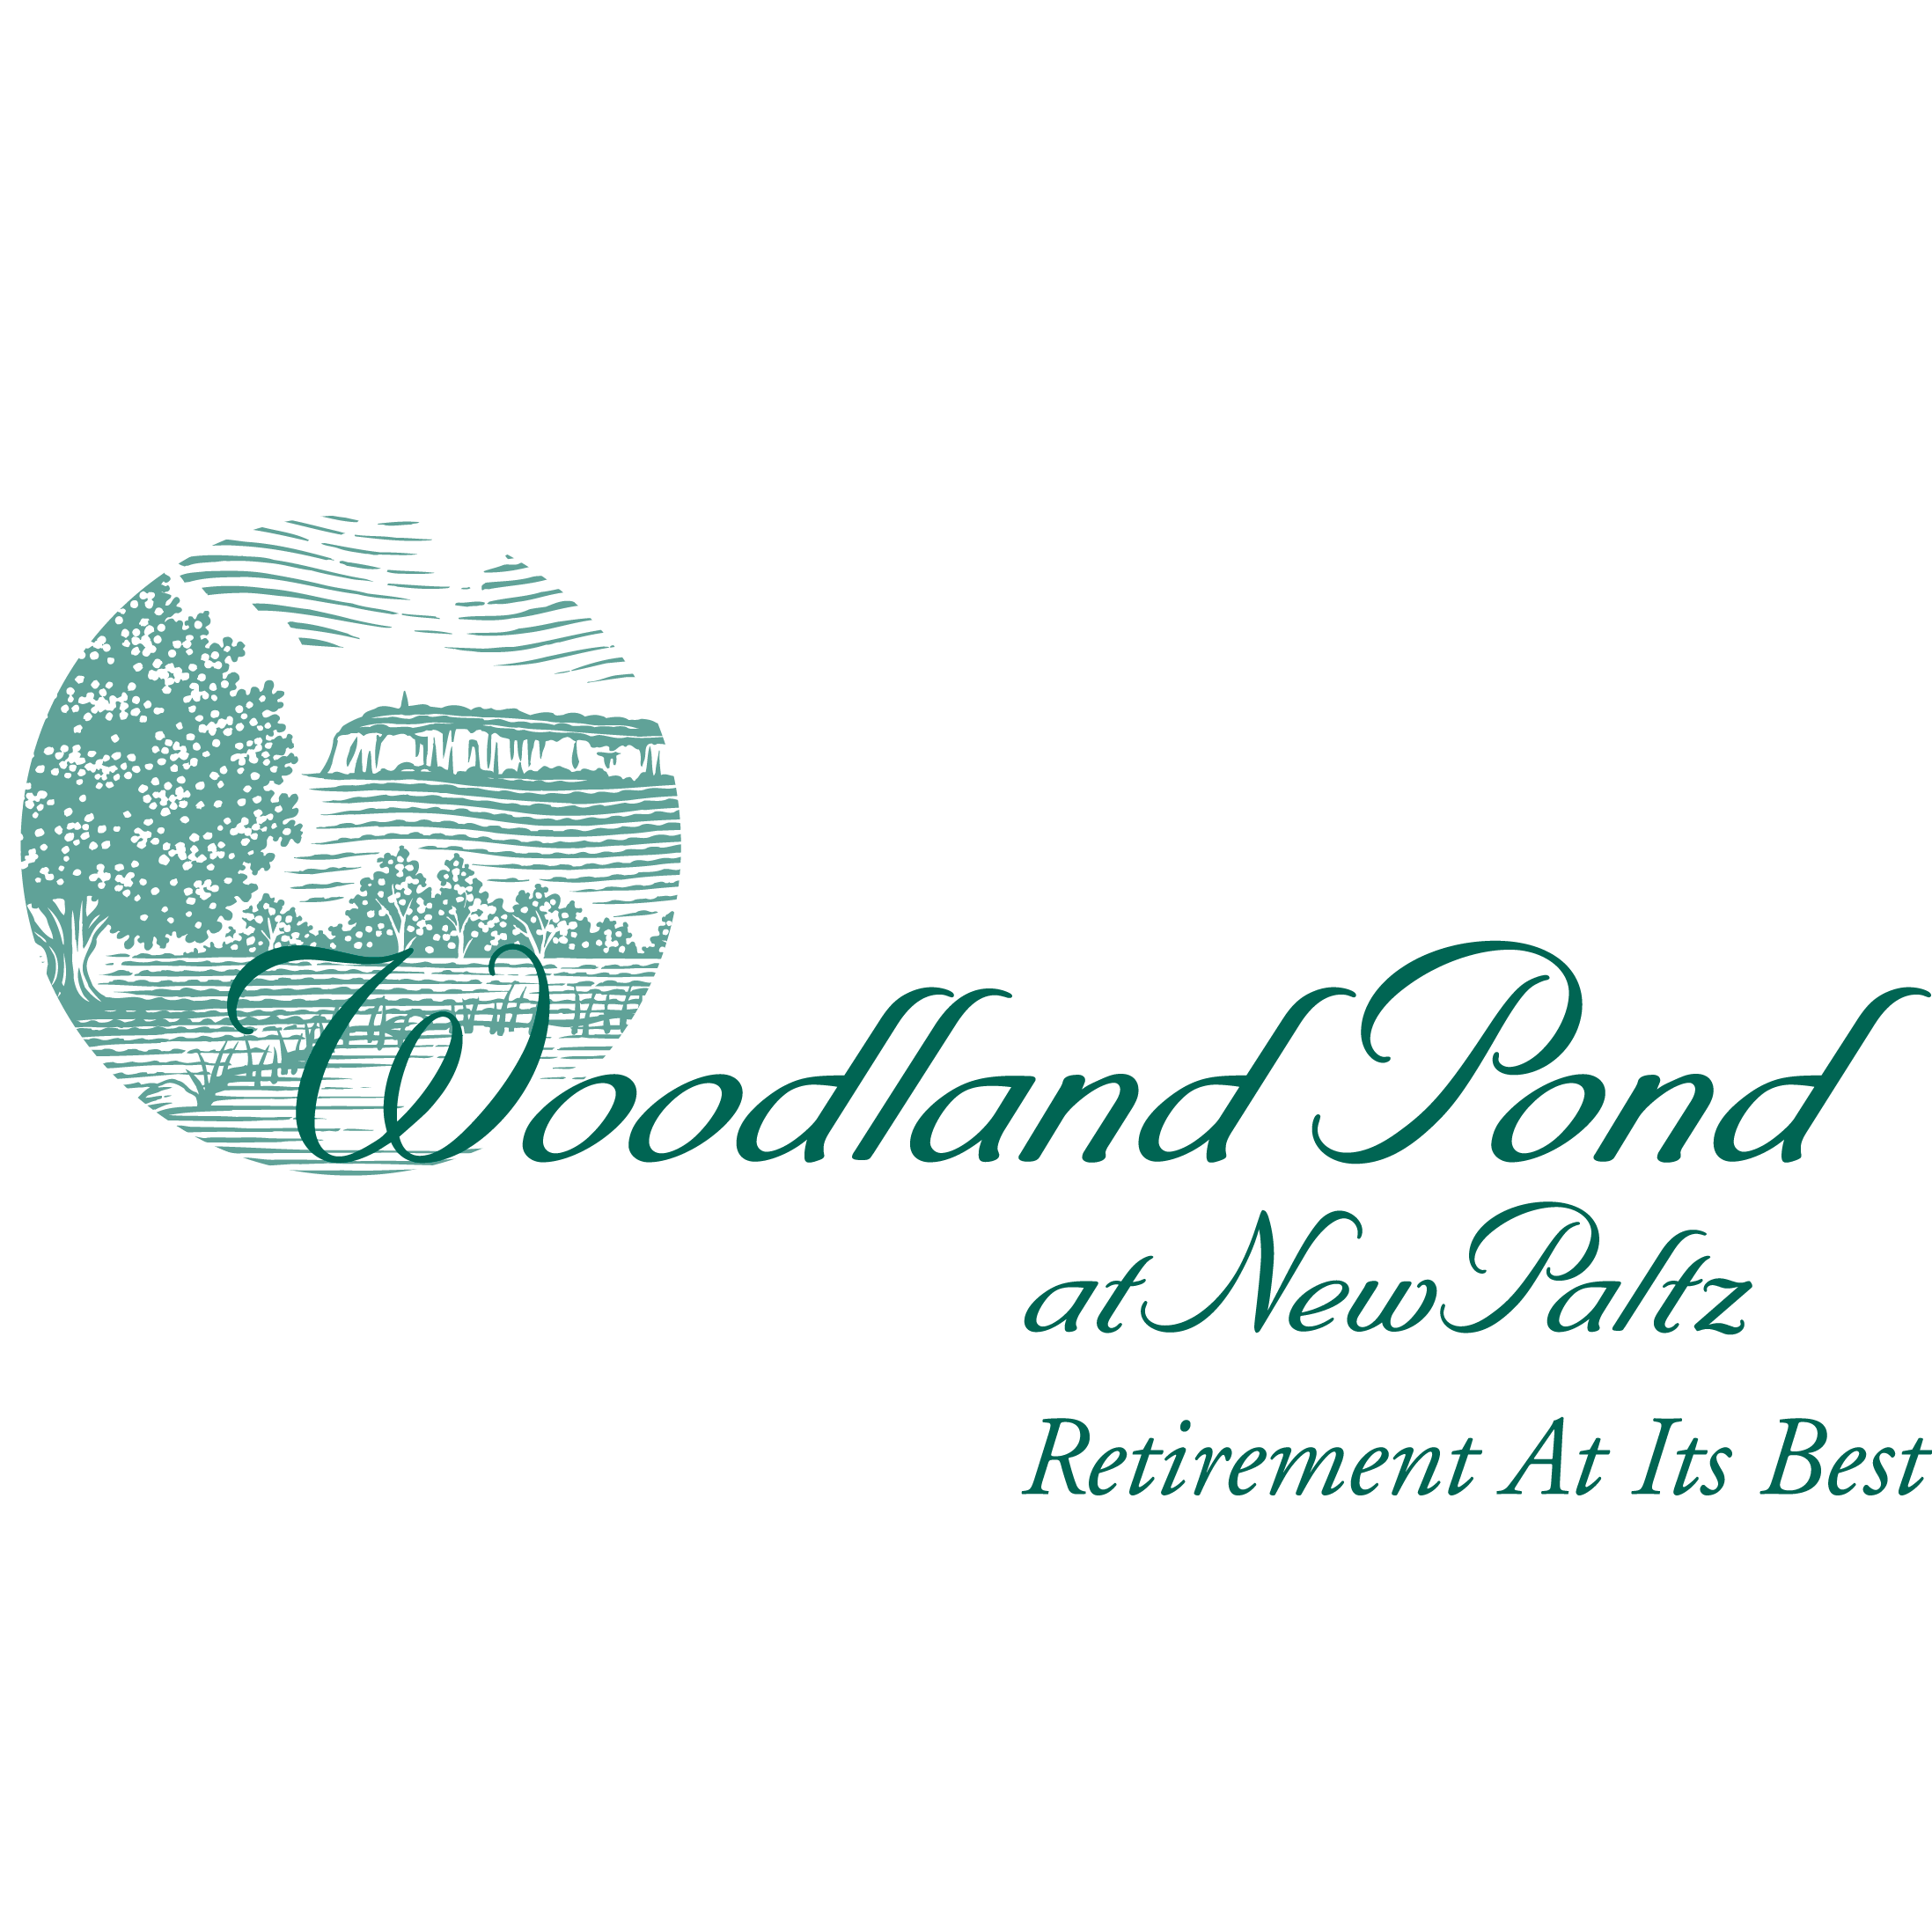 Woodland Pond at New Paltz